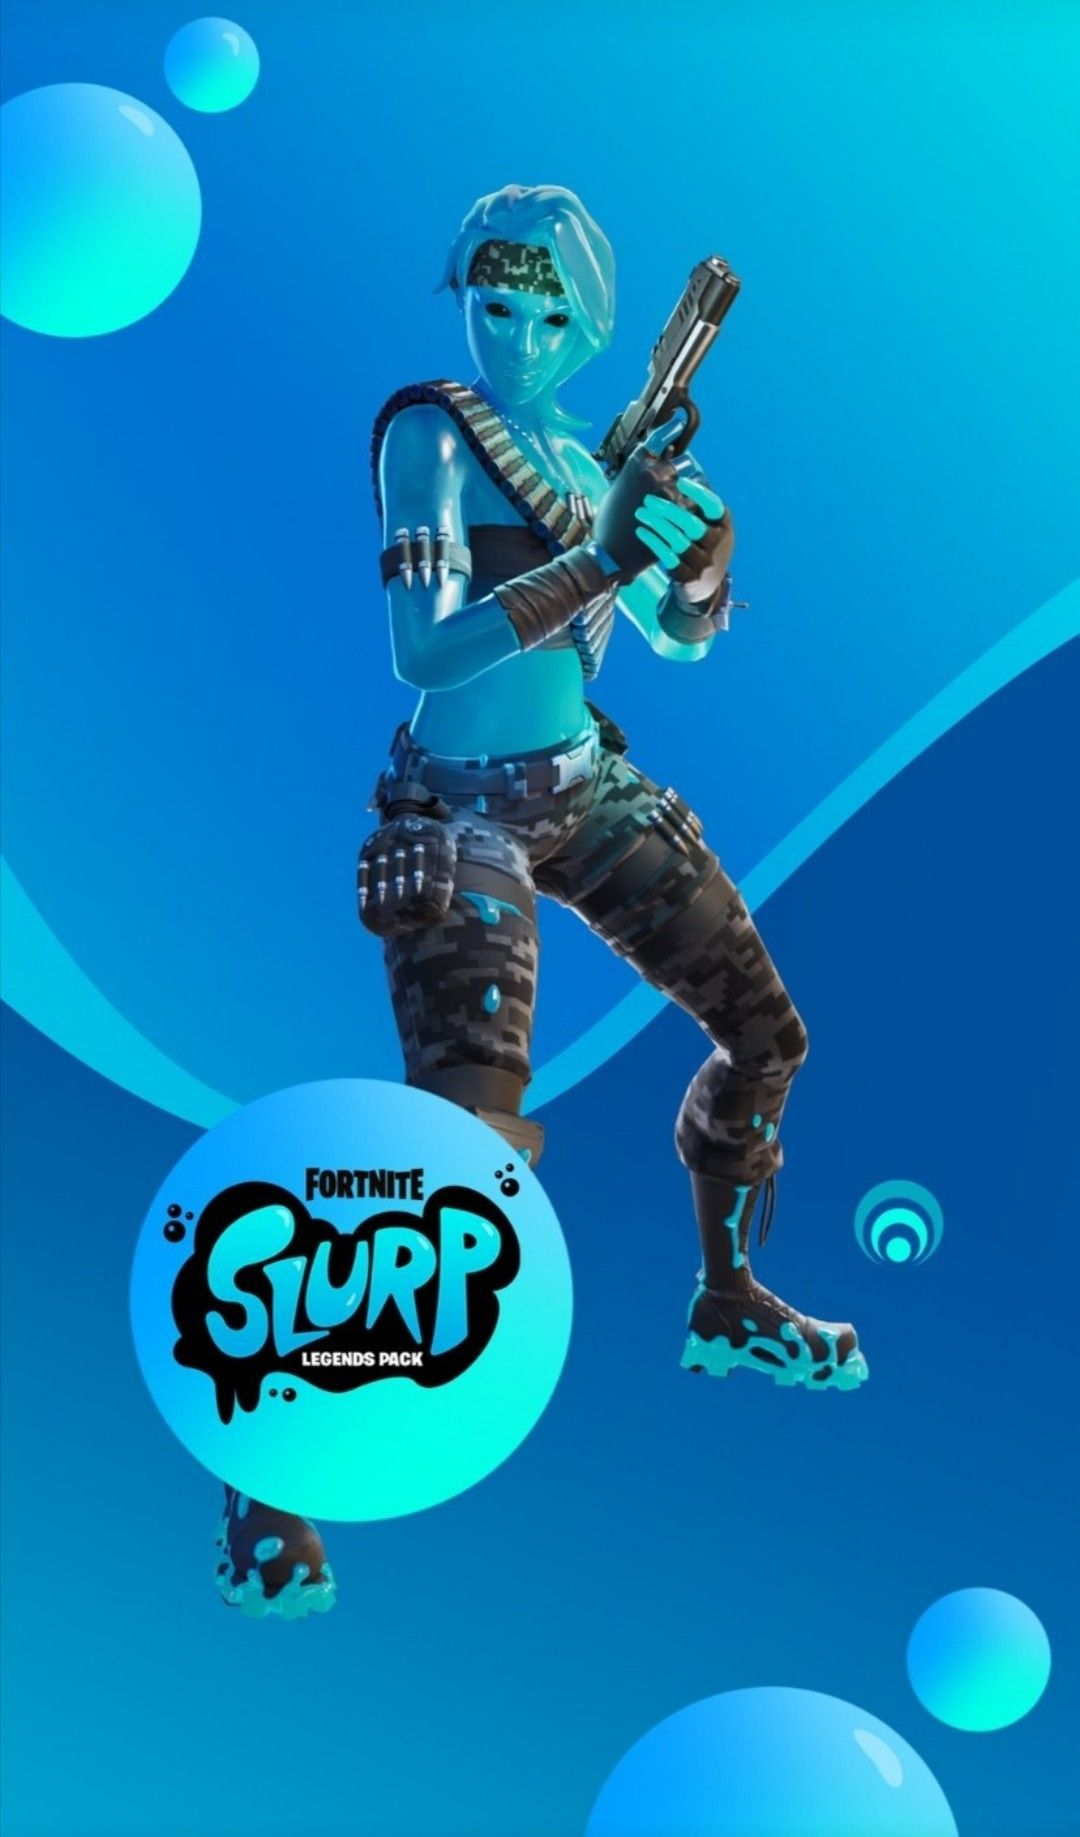 Pin by Pro Gamer Station 🏅 🎮 on Fortnite Next Skin in 2020